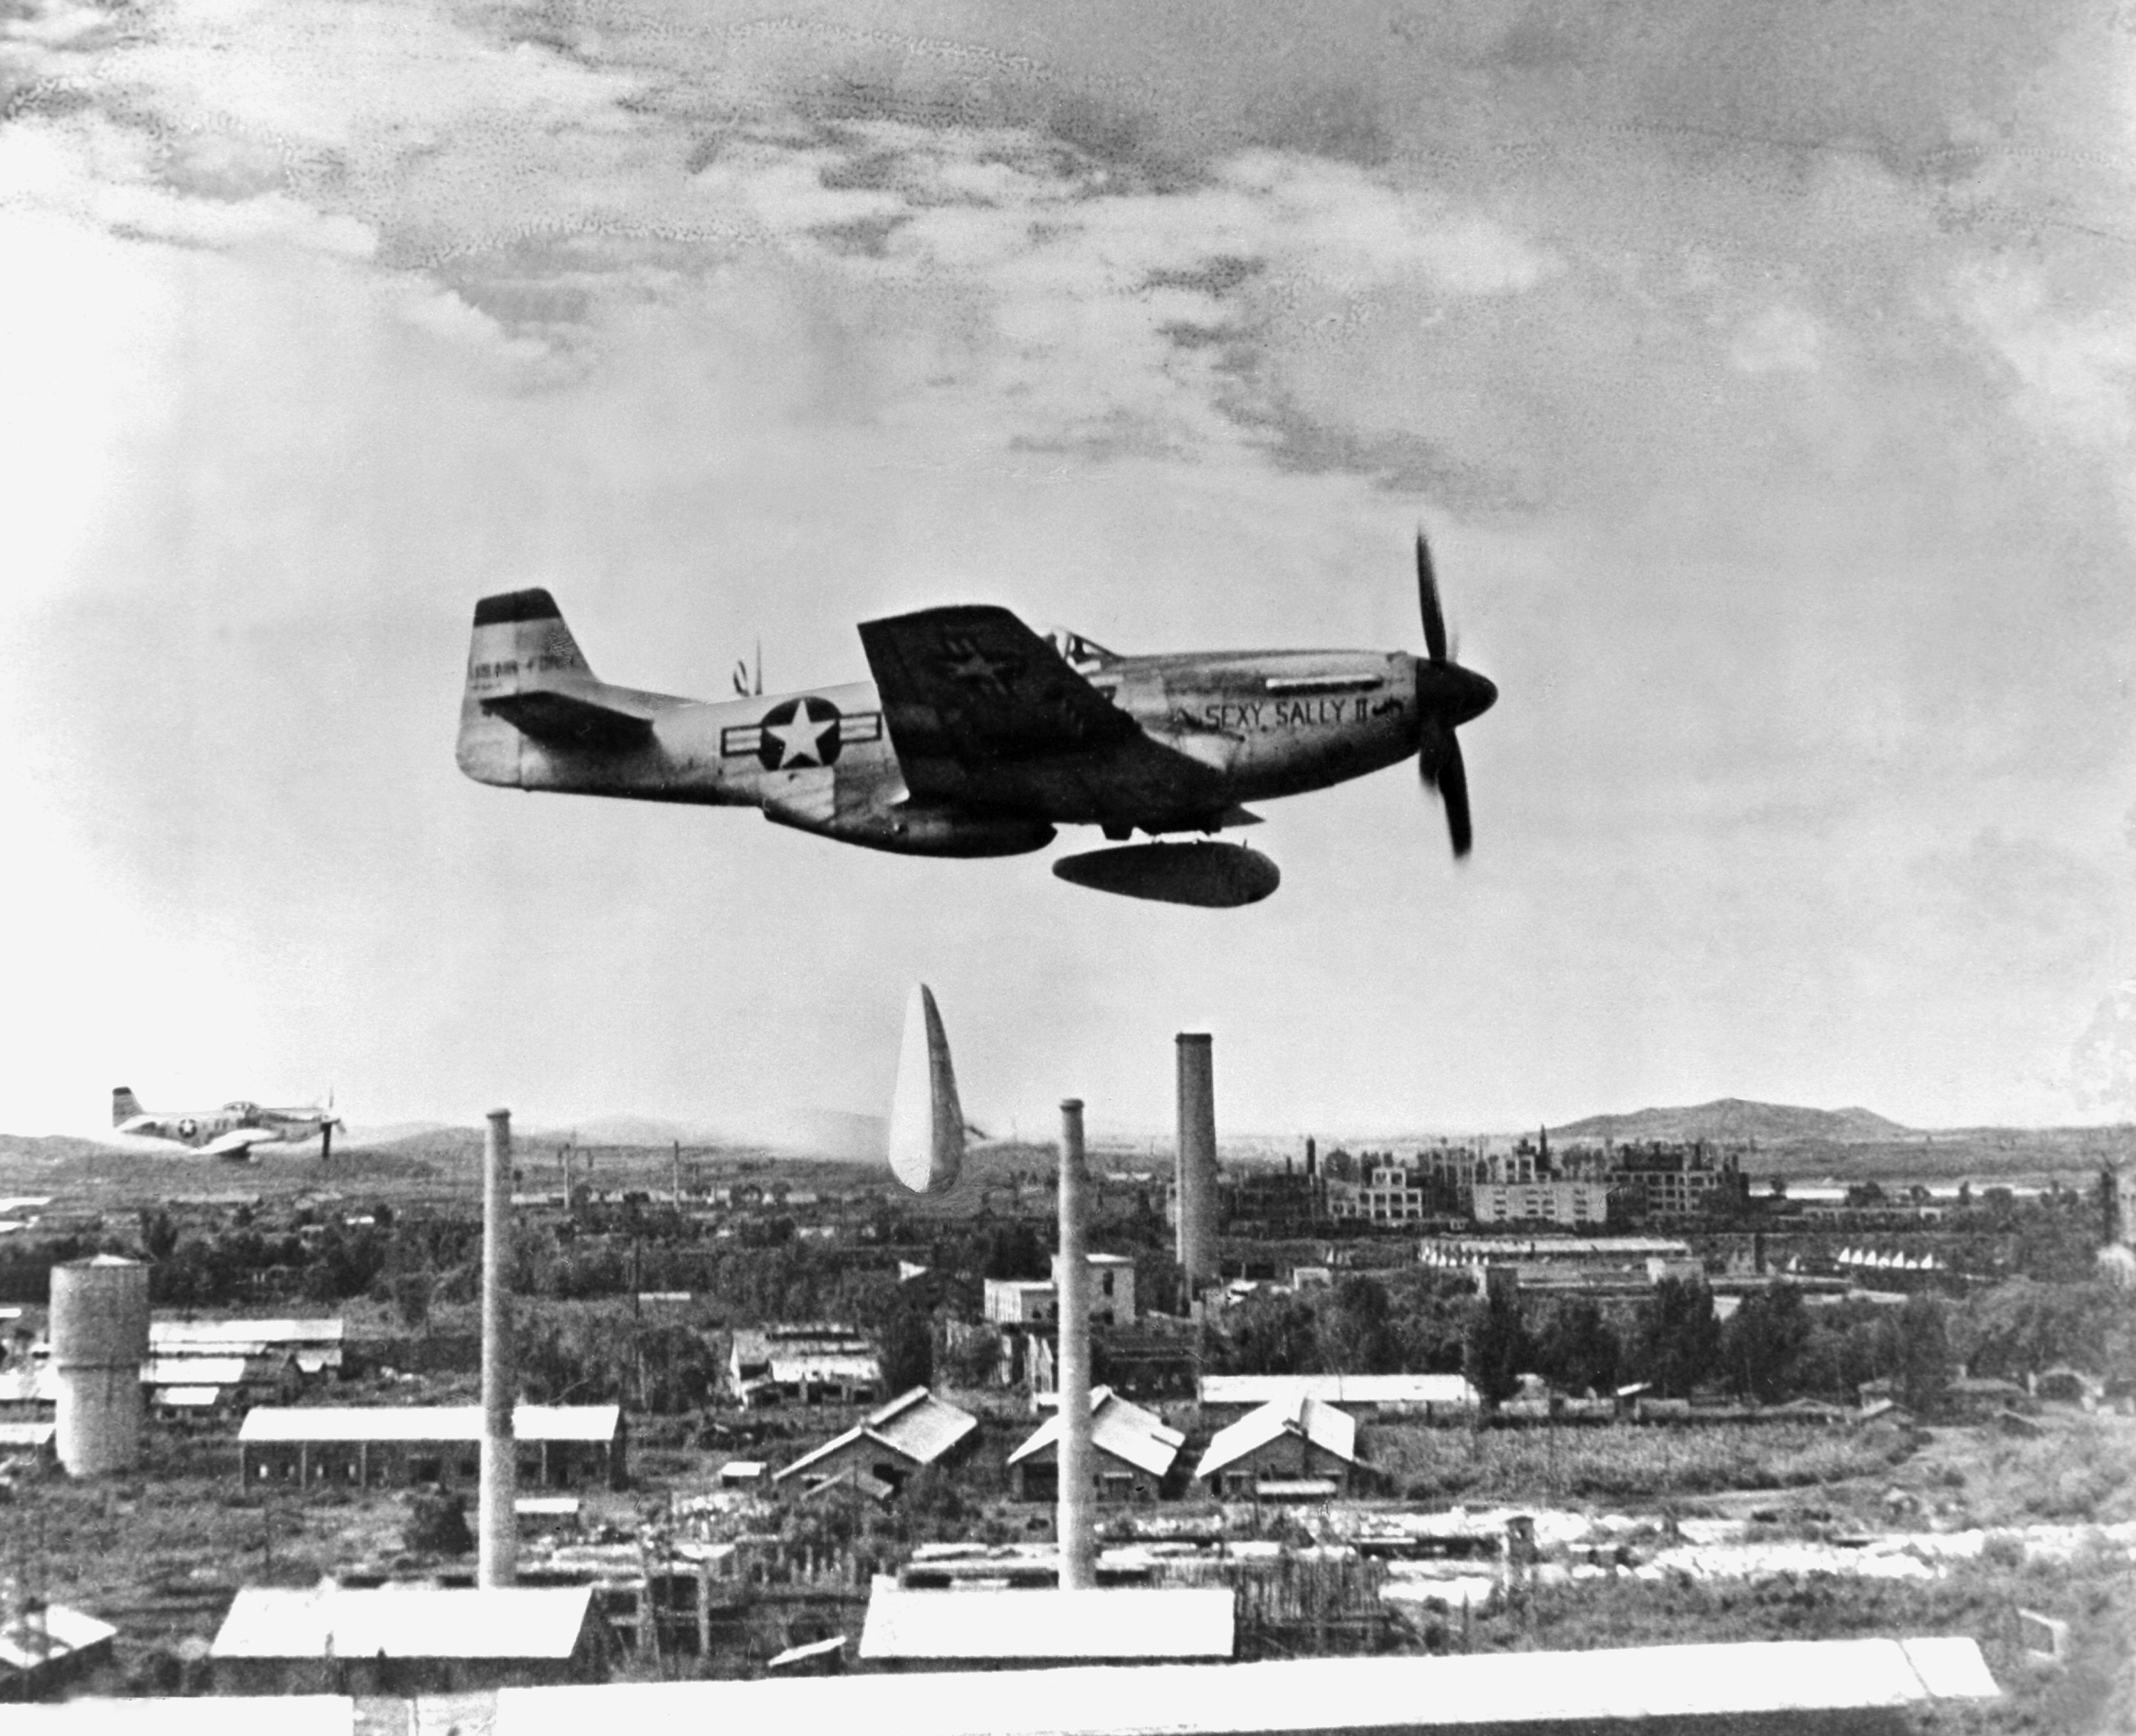 F-51 Mustang of the U.S. Fifth Air Force's